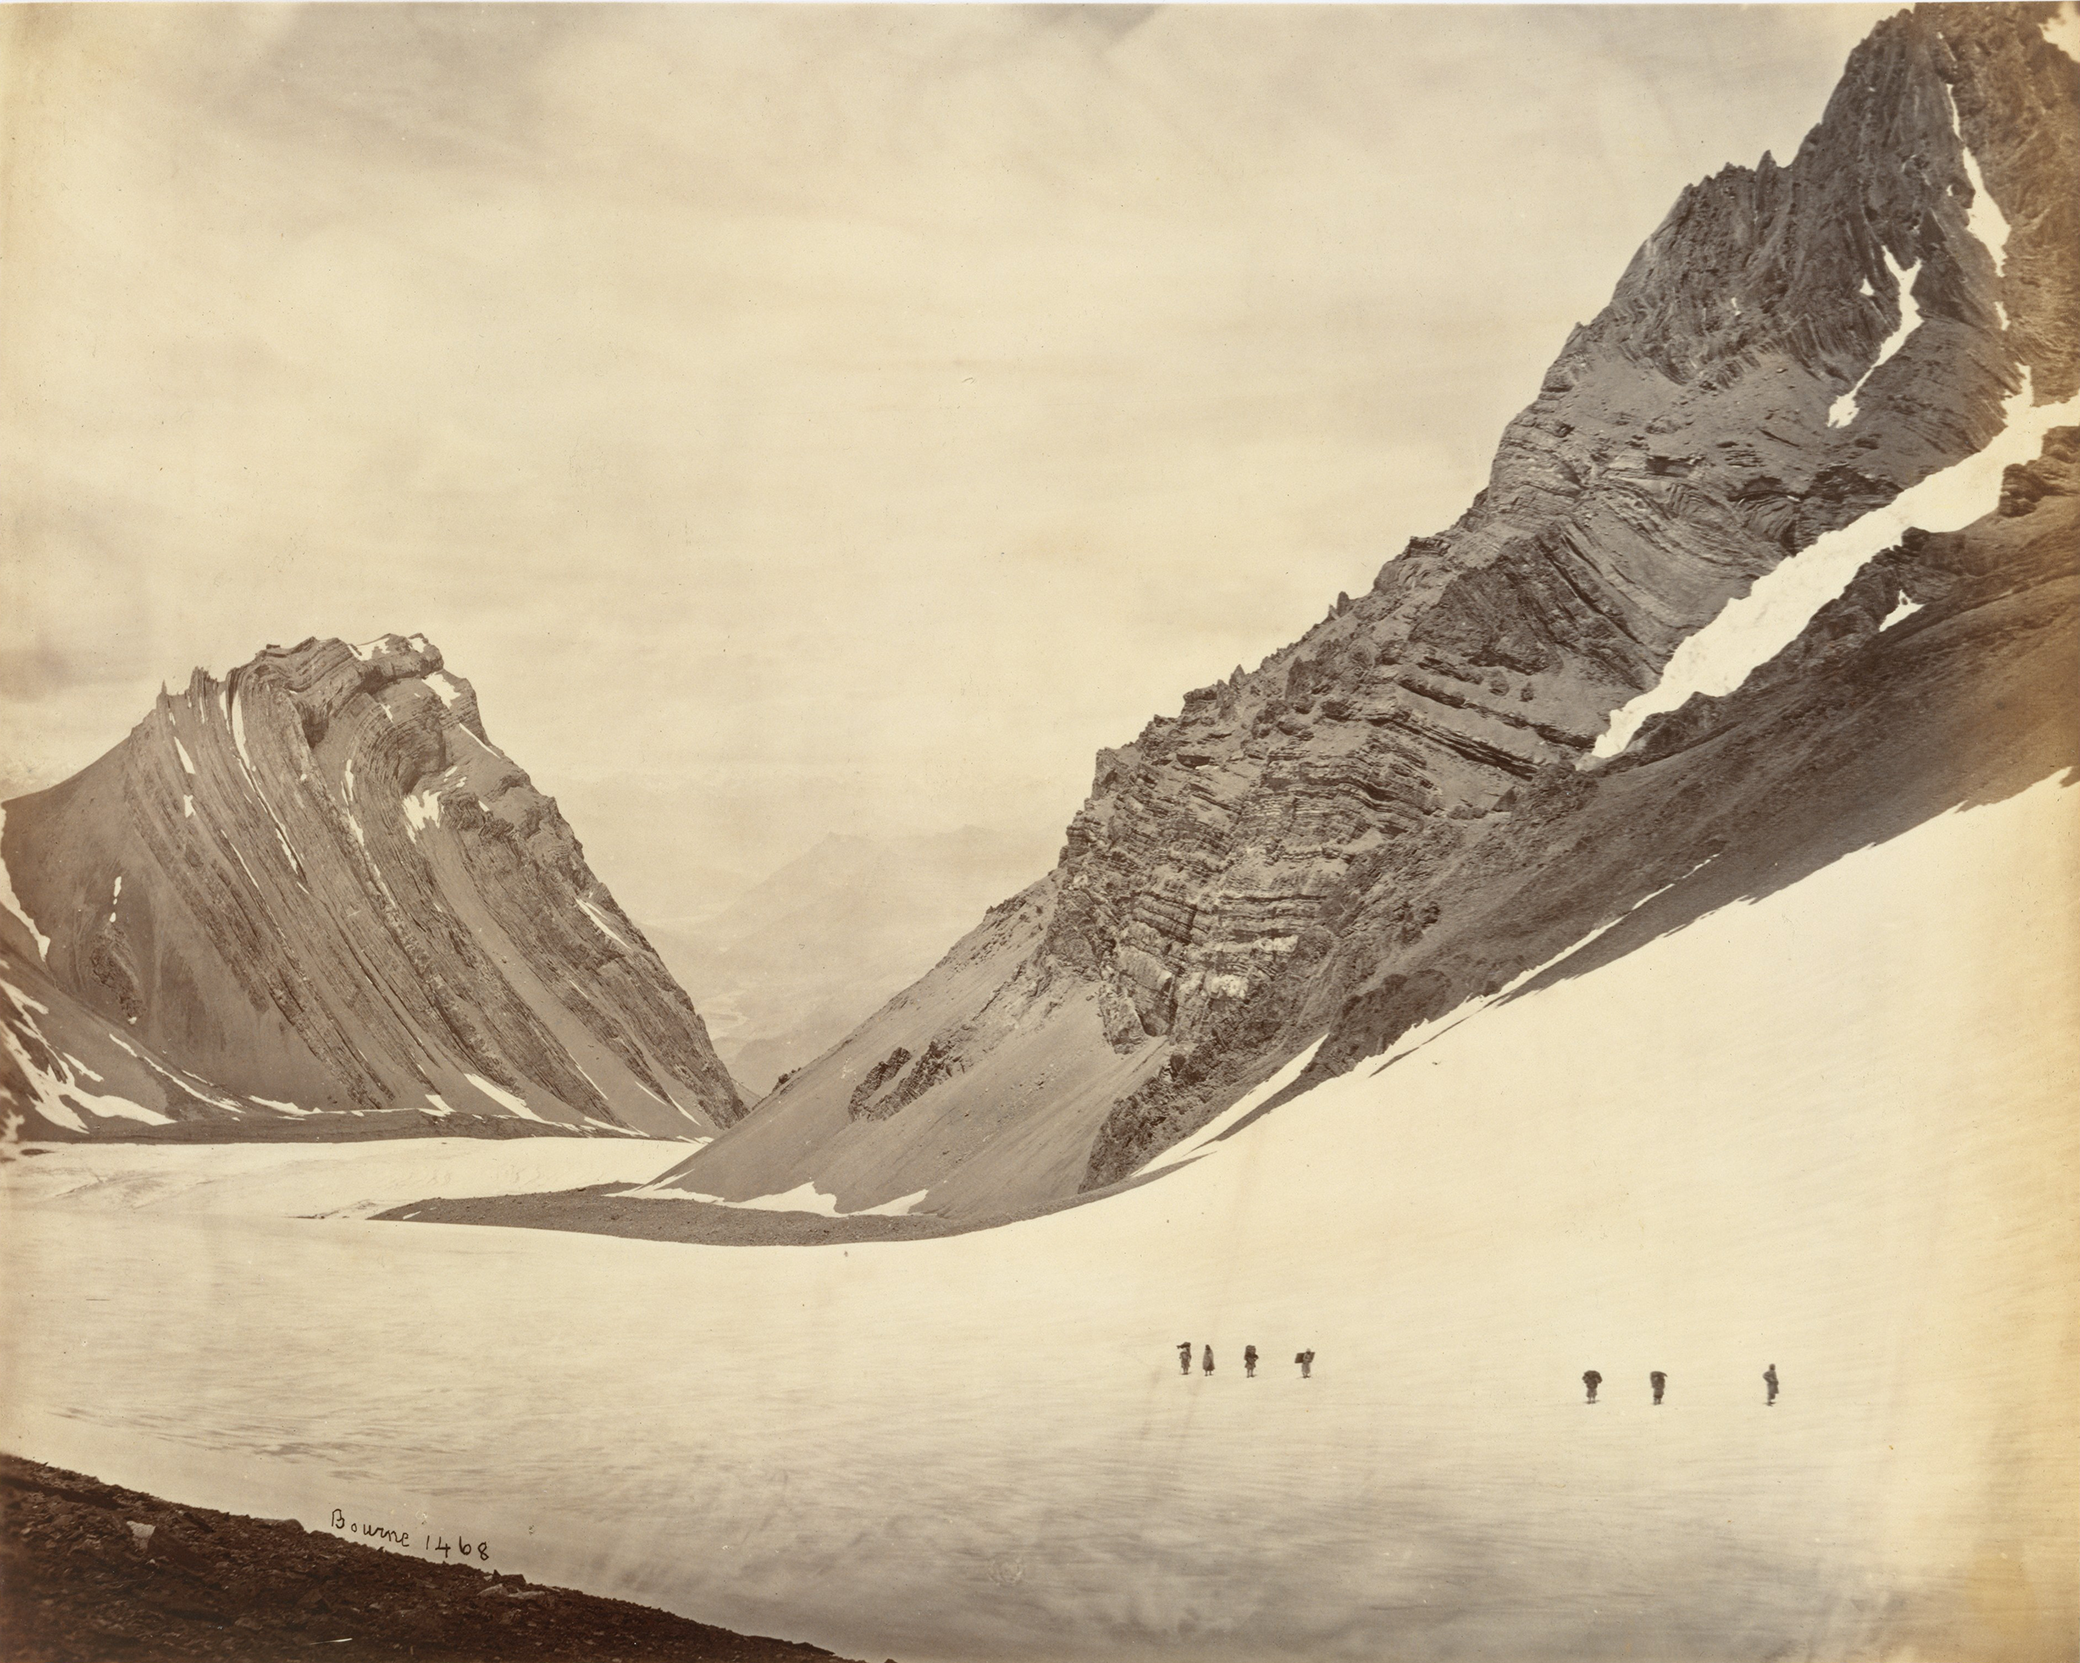 The Manirung Pass, by Samuel Bourne, 1860s. The Metropolitan Museum of Art, Gilman Collection, Purchase, Cynthia Hazen Polsky Gift, 2005.